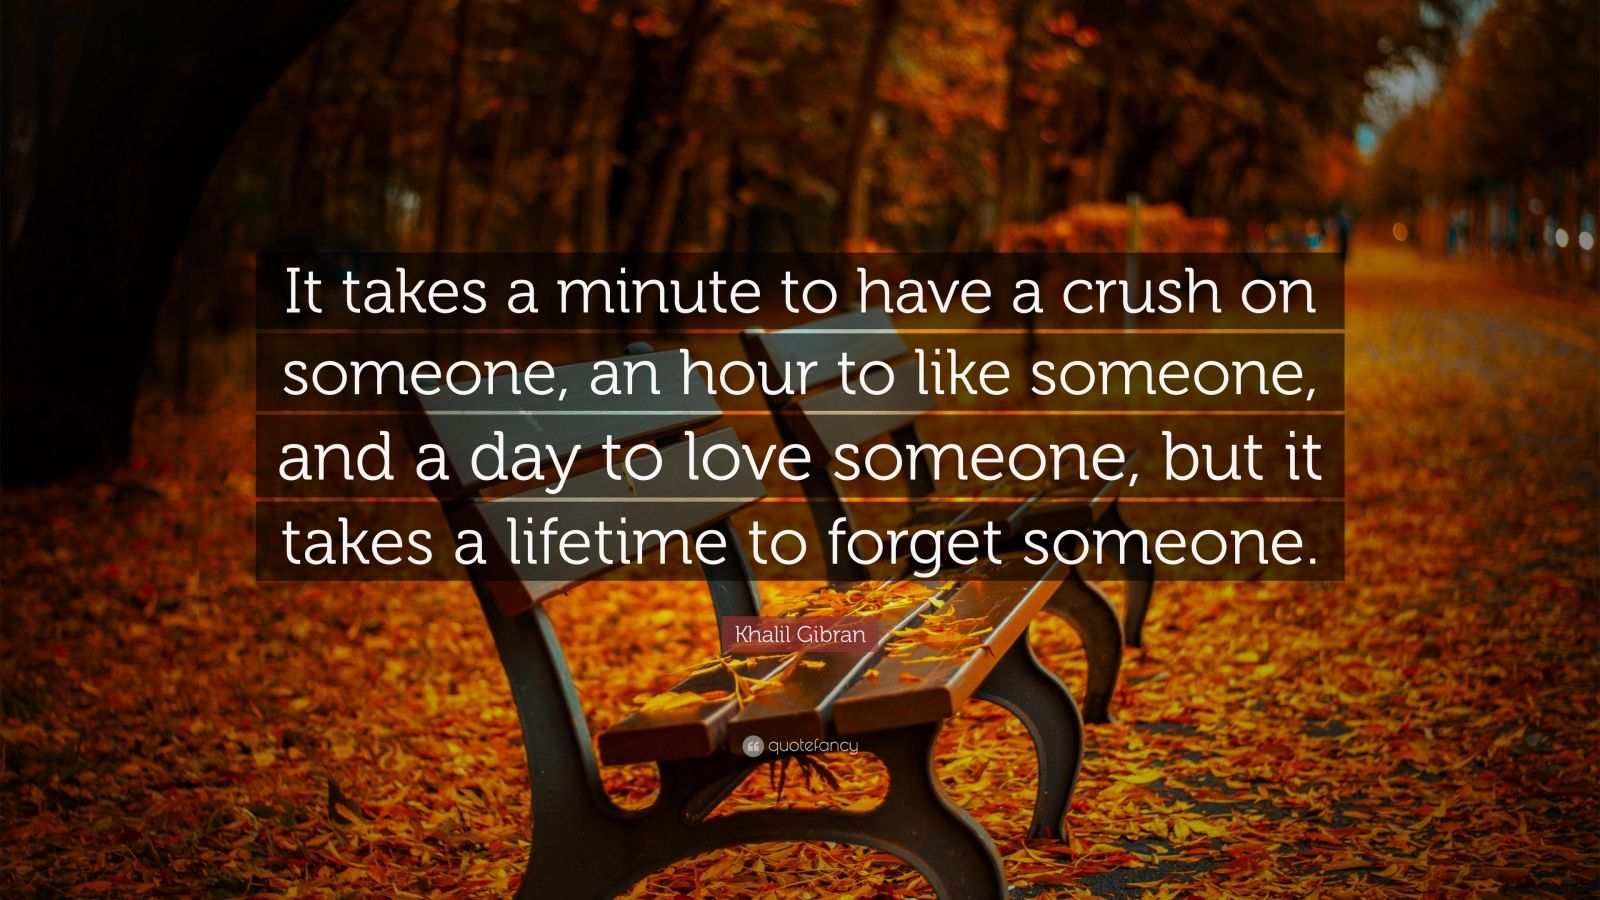 """Khalil Gibran Quote: """"It takes a minute to have a crush on someone, an hour to like someone, and a day to love someone, but it takes a lifetime to forget someone."""""""